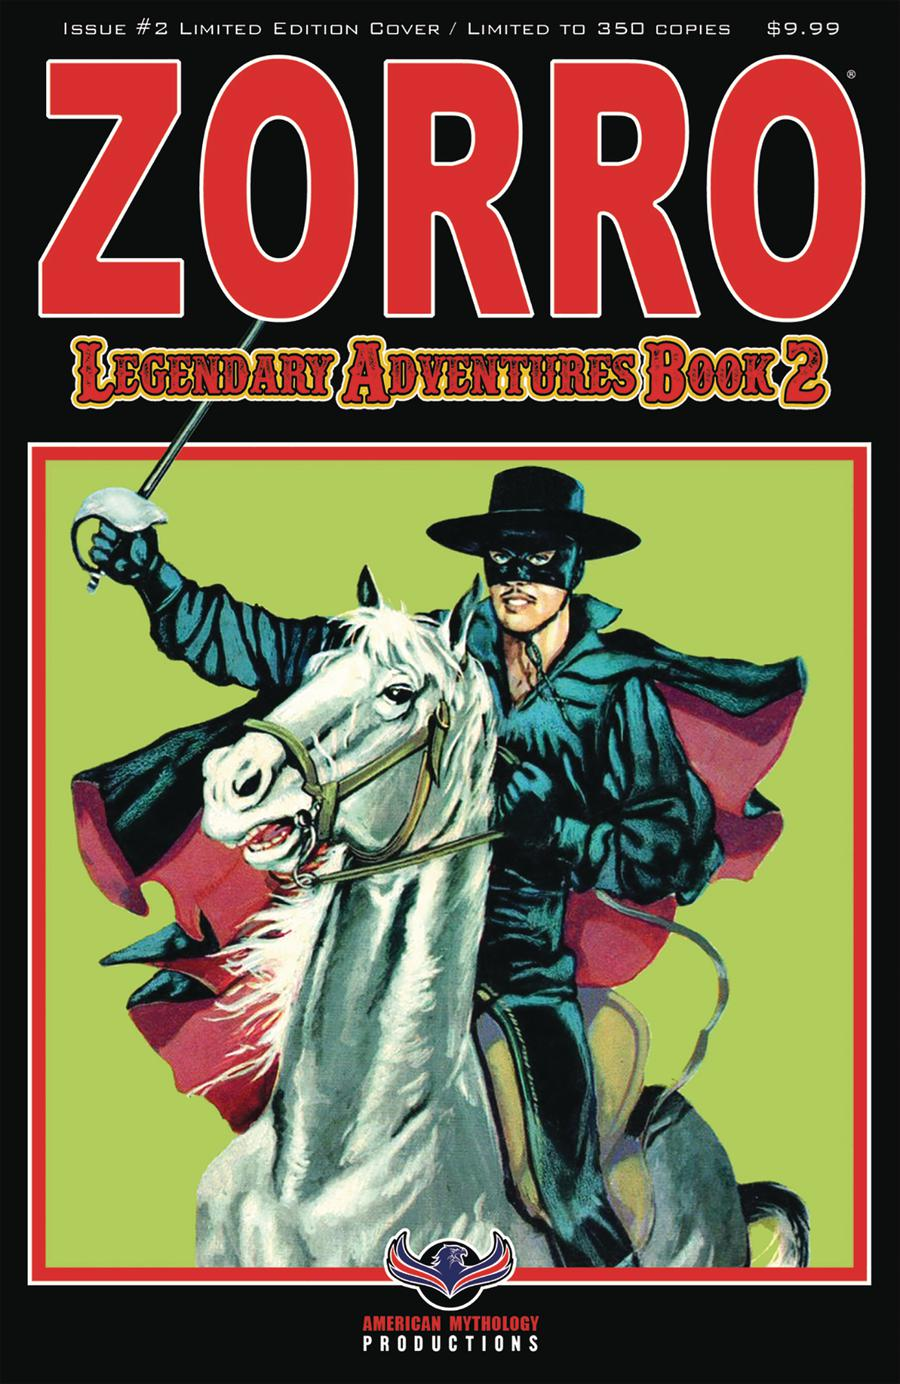 Zorro Legendary Adventures Book 2 #2 Cover B Variant Nicola Del Principe Blazing Blades Limited Edition Cover